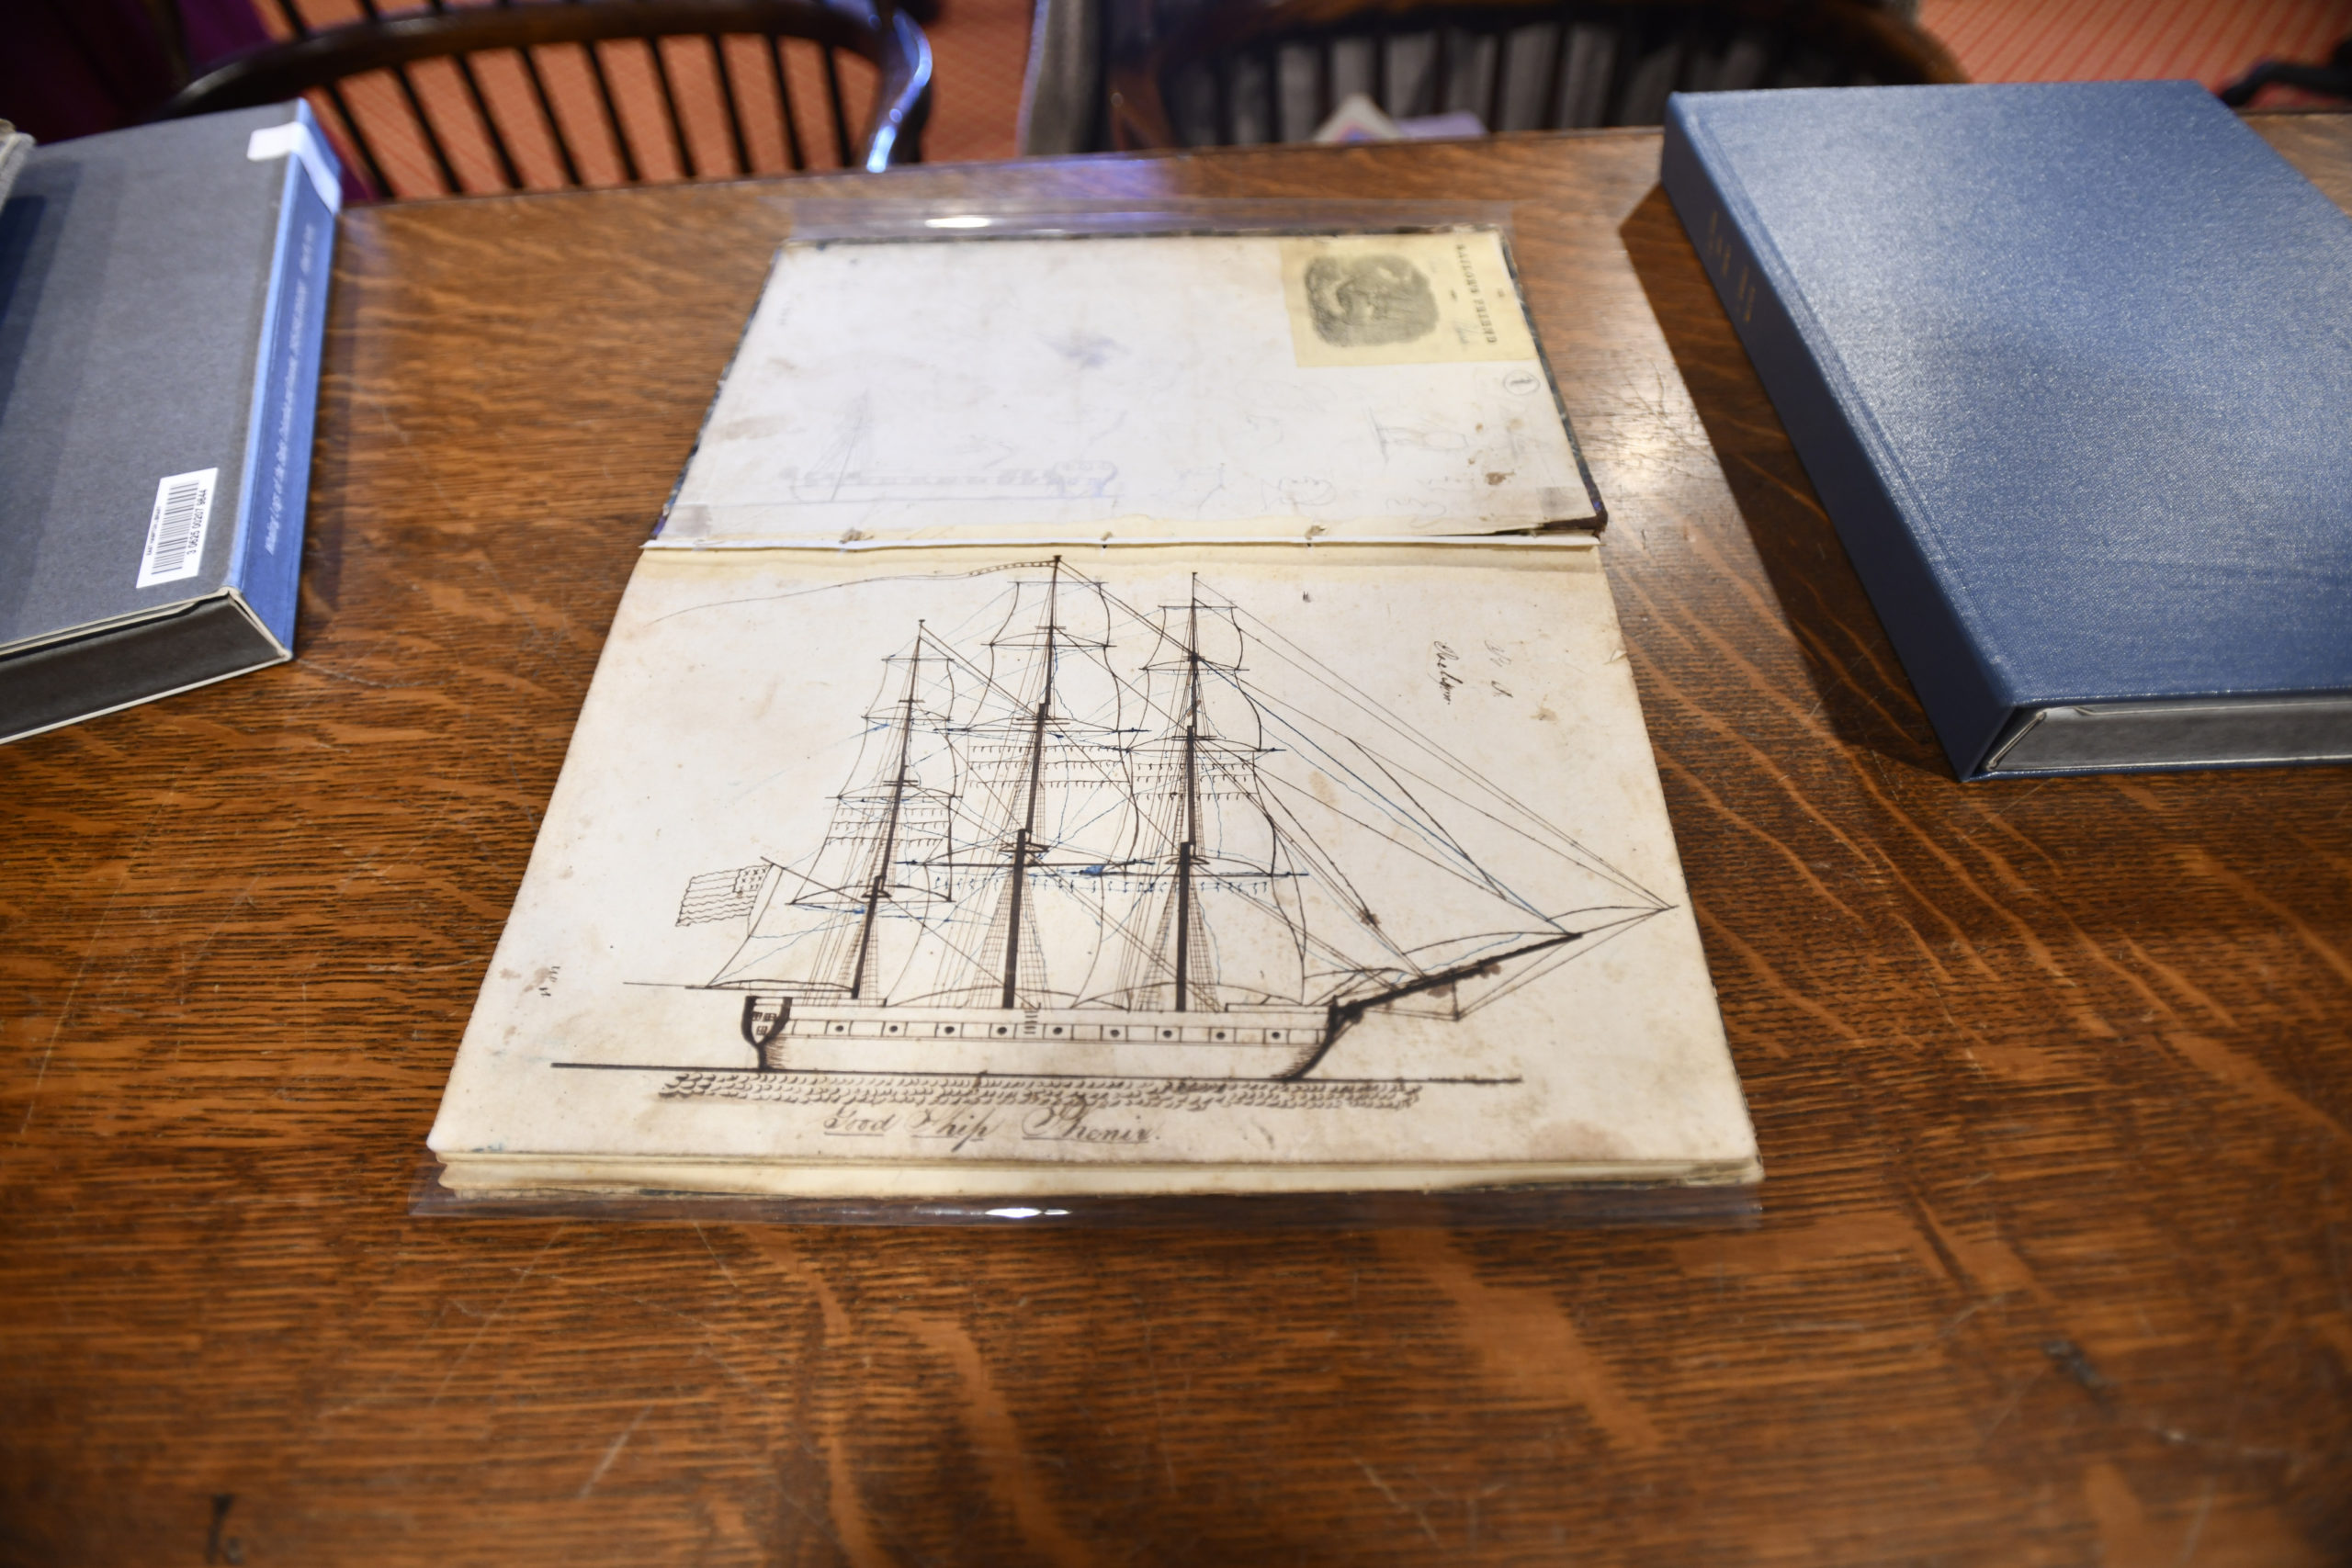 A rendering of the  whaling ship Phenix from the pages of its log. The Phenix was on a voyage from Sag Harbor to the Northwest Coast, 10 October 1844 to 5 June 1847.   DANA SHAW